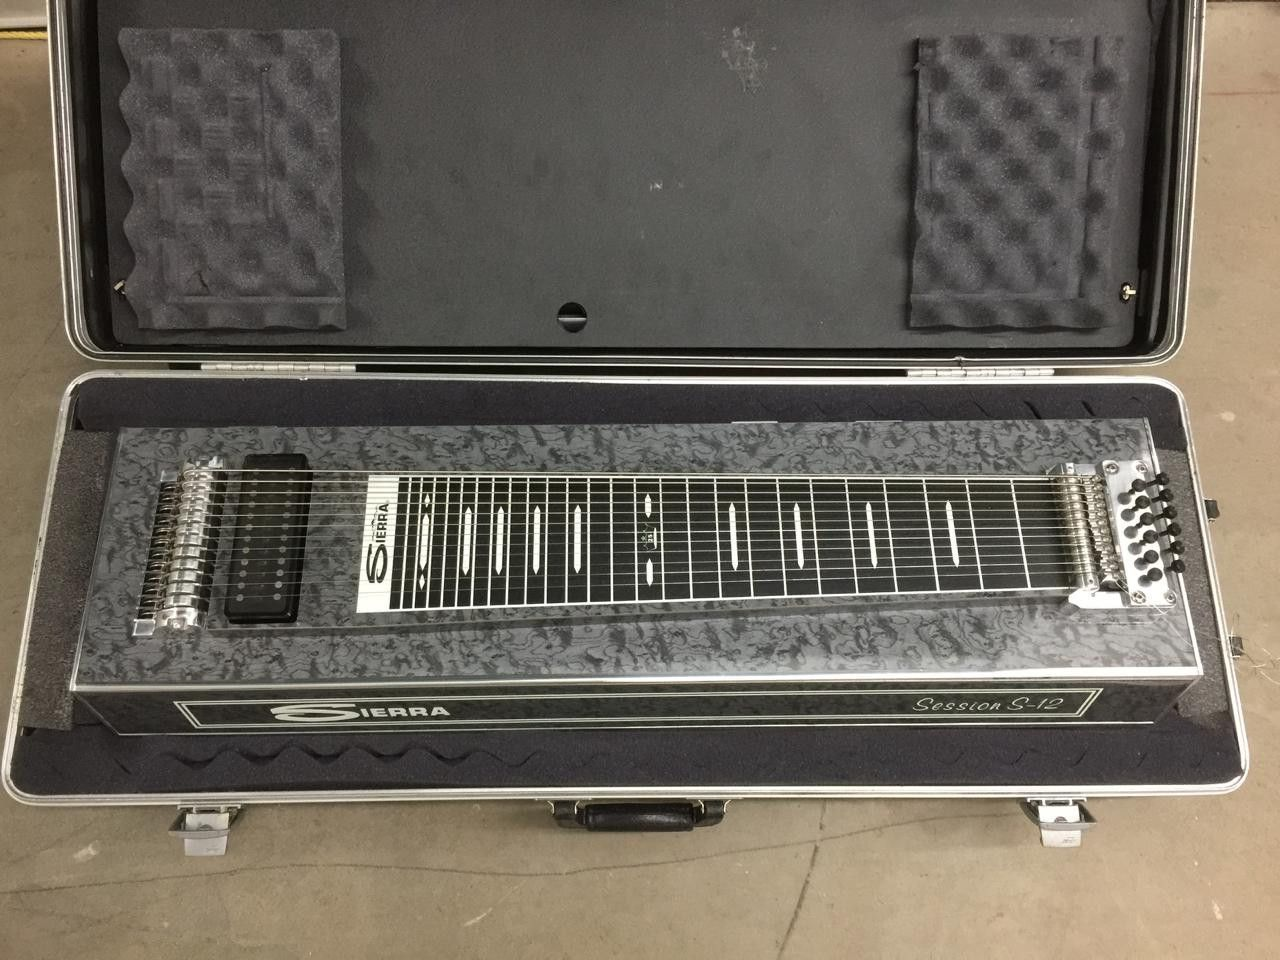 Our newest vintage piece is this Sierra Session S-... Click on the link http://www.vintageguitarsli.com/products/sierra-session-s-12-pedal-steel-guitar?utm_campaign=social_autopilot&utm_source=pin&utm_medium=pin to learn more.